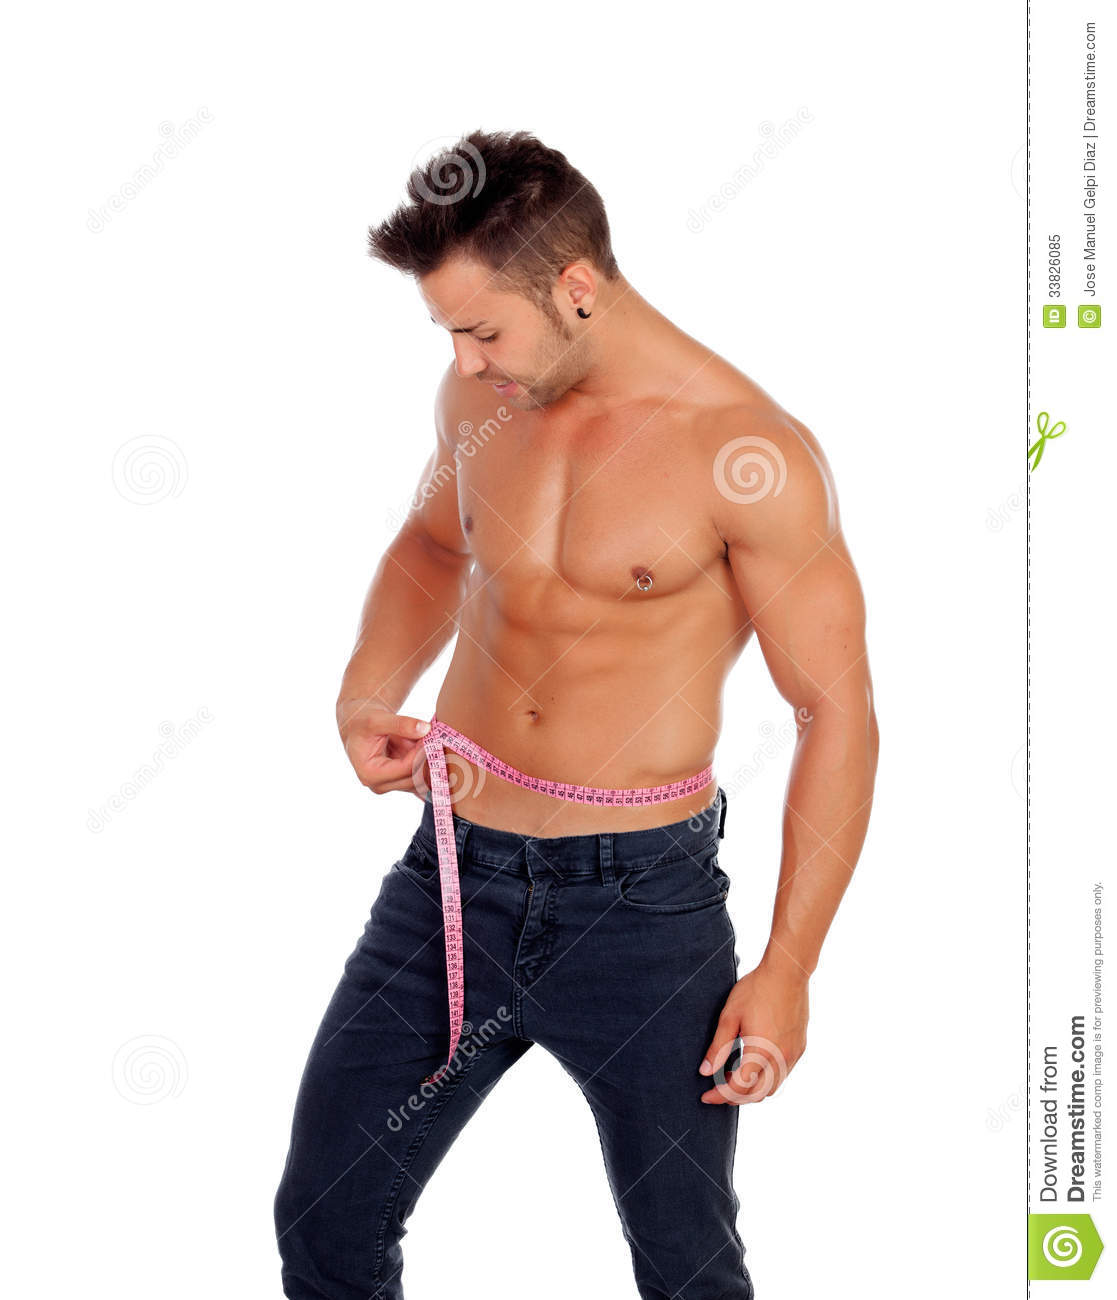 Normal waist sizes for men and women. Includes a chart for women and a chart for men with ideal waist line measurements for women and men of different heights. Includes waist-to-height ratio targets recommendations from the World Health Organization.